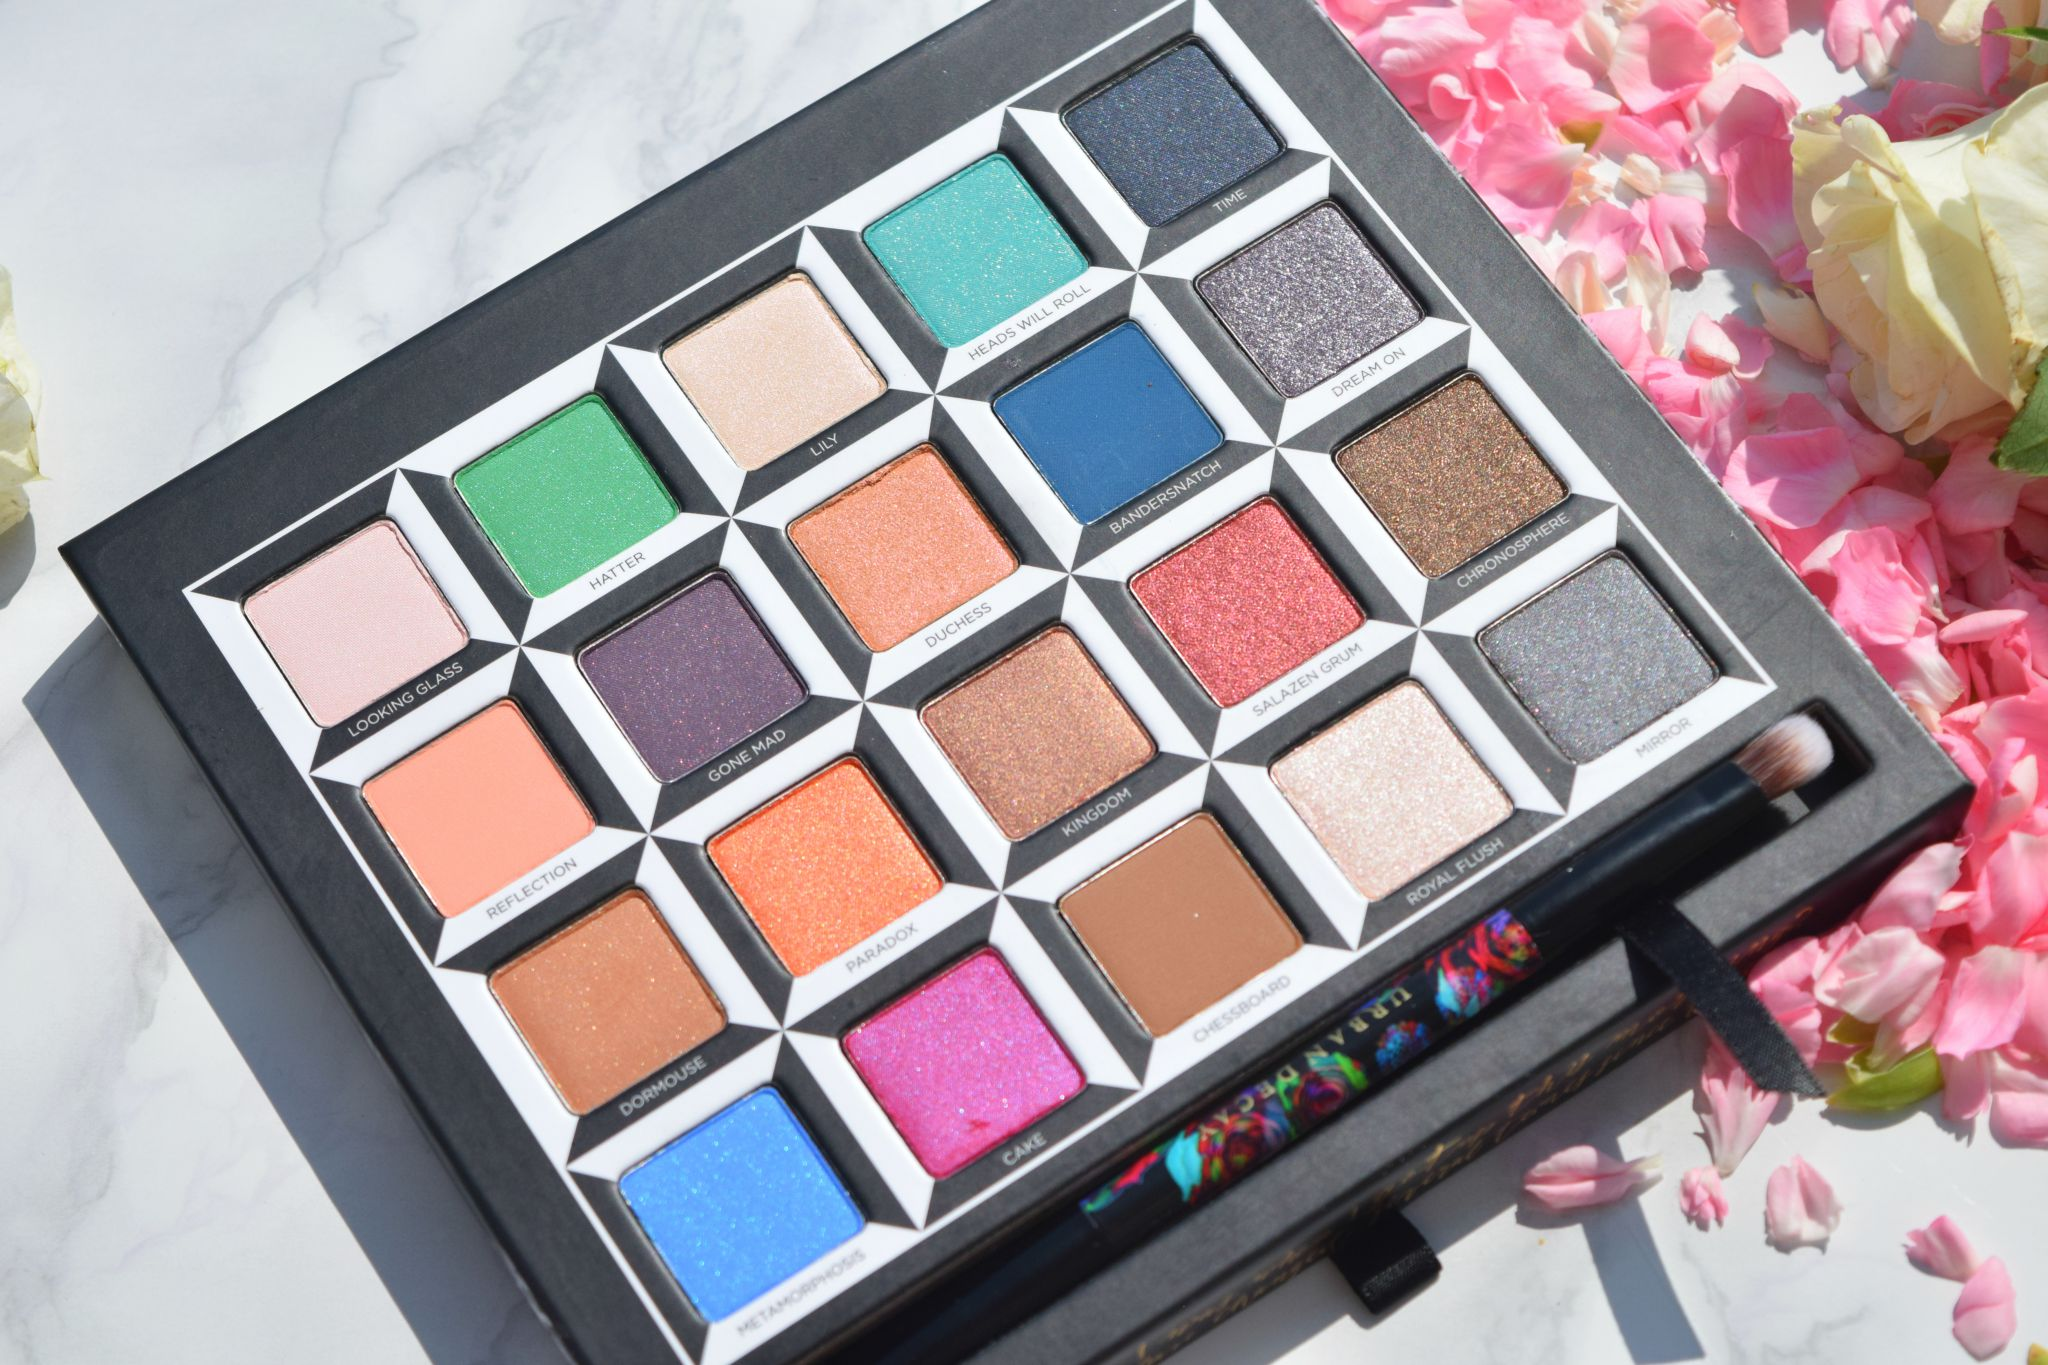 Urban Decay Alice in Wonderland Palette review